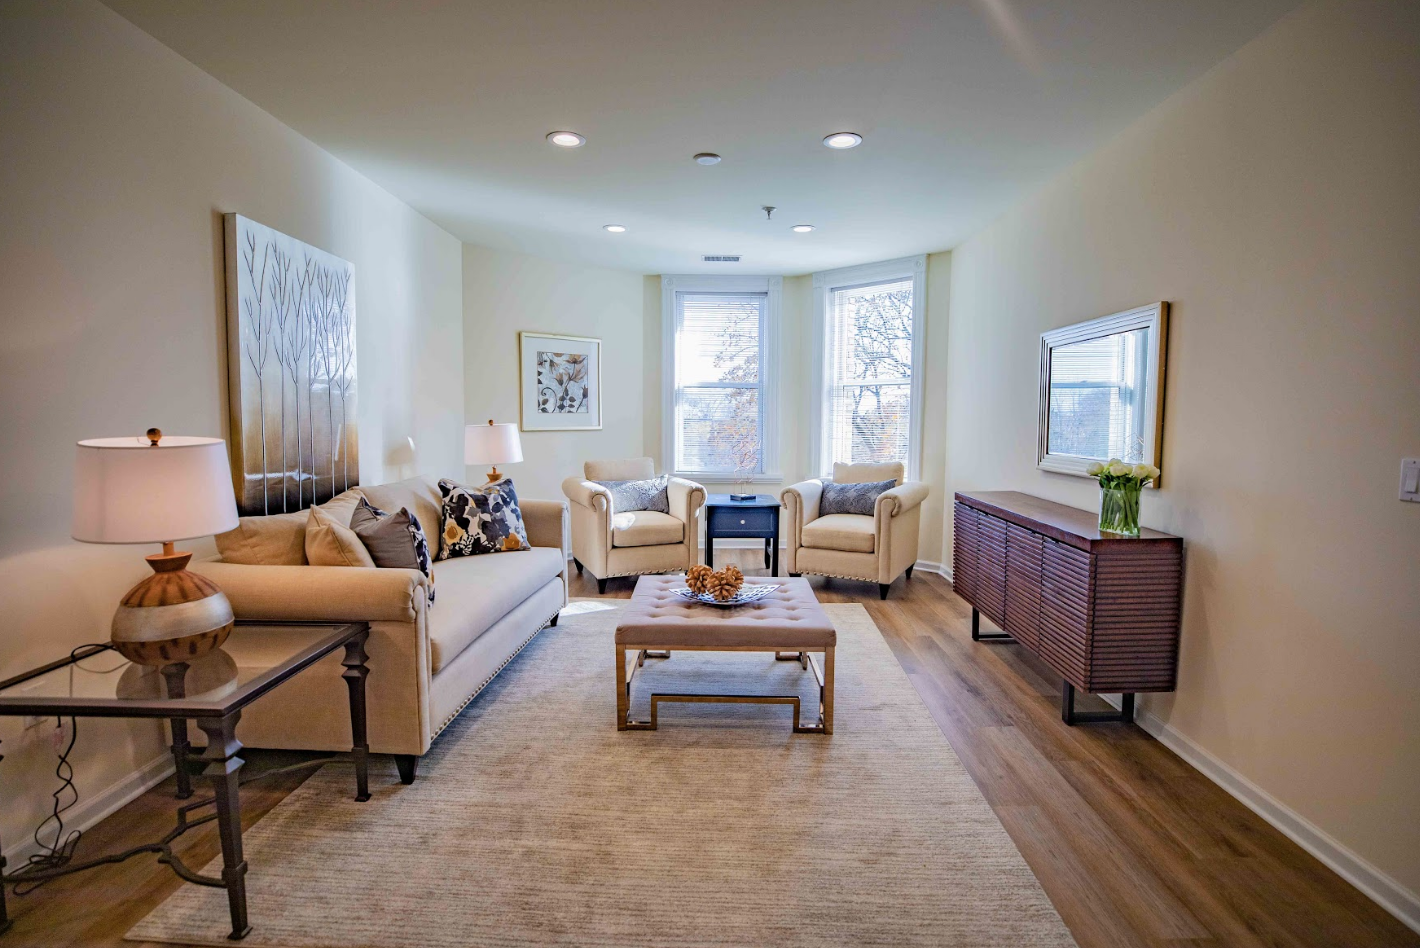 Distinctive Renovated Apartment Home Decorated for Holiday Season